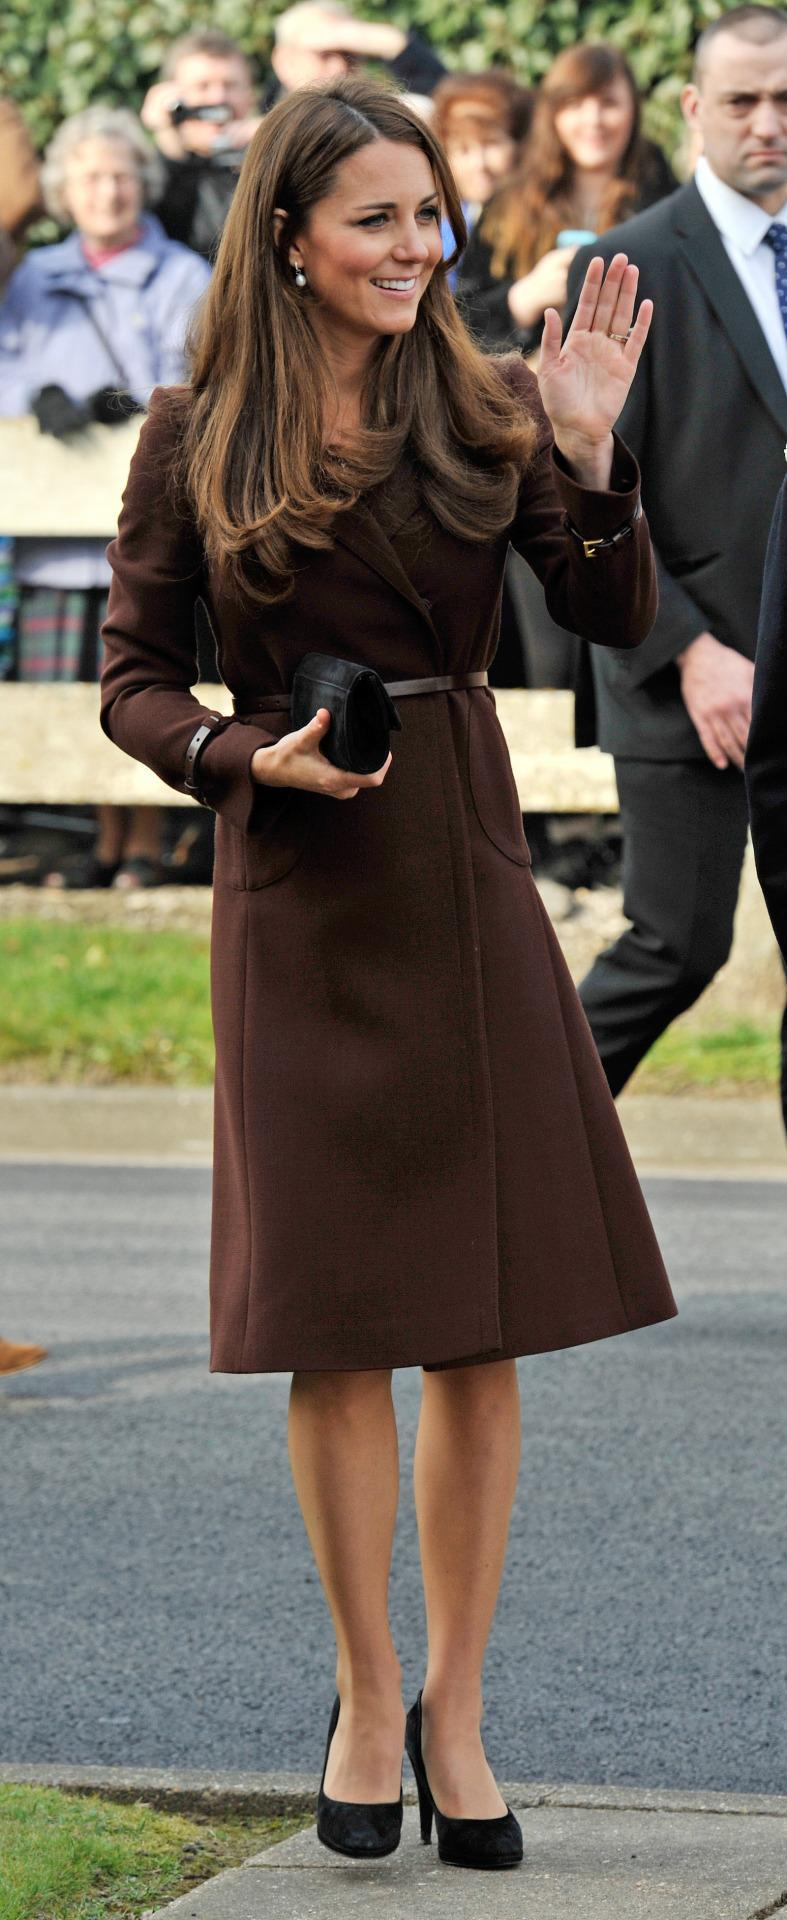 <p>Kate visited Grimsby in a chic brown Hobbs coat teamed with a black suede clutch and matching heels.</p><p><i>[Photo: PA]</i></p>